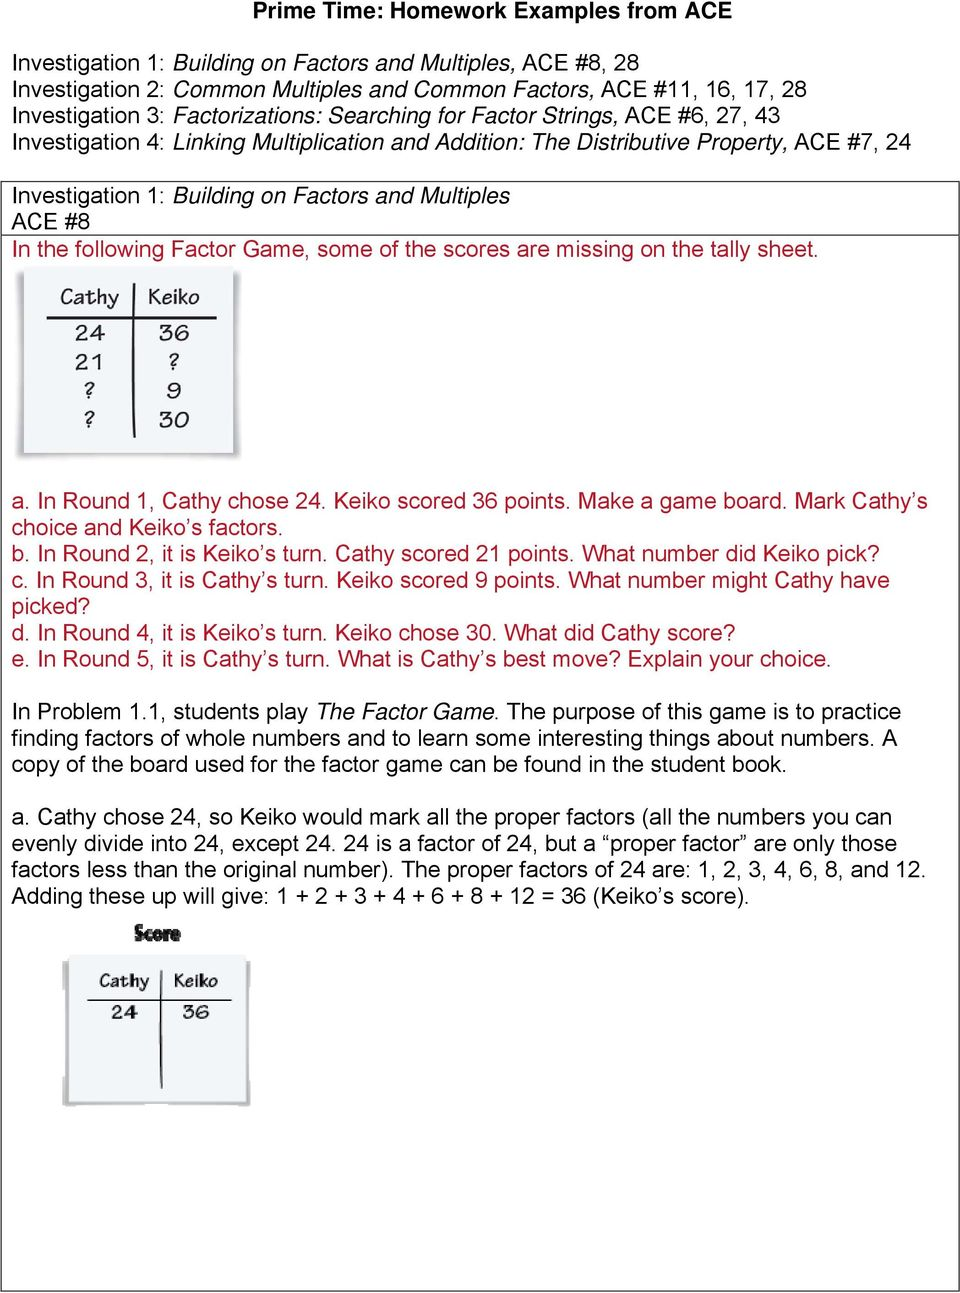 Prime Time: Homework Examples from ACE - PDF